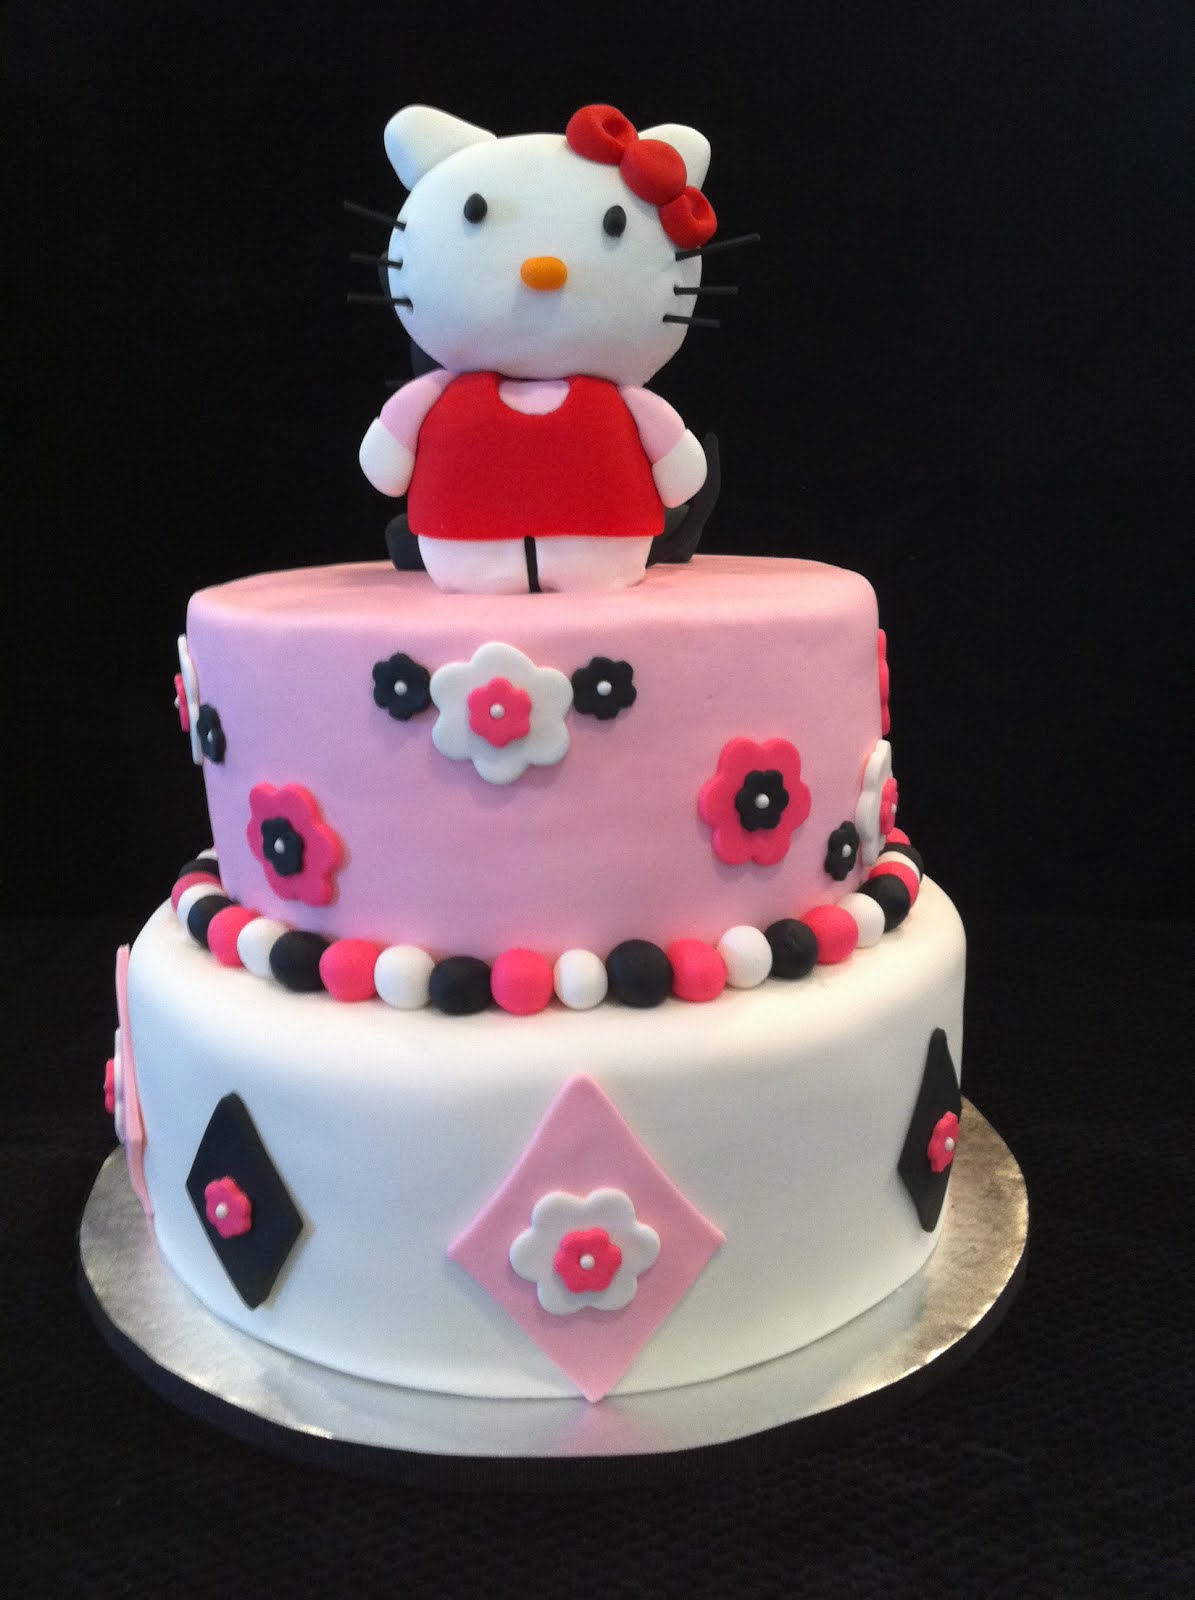 Tarynes Tasty Treats Hello Kitty Tiered Birthday Cake